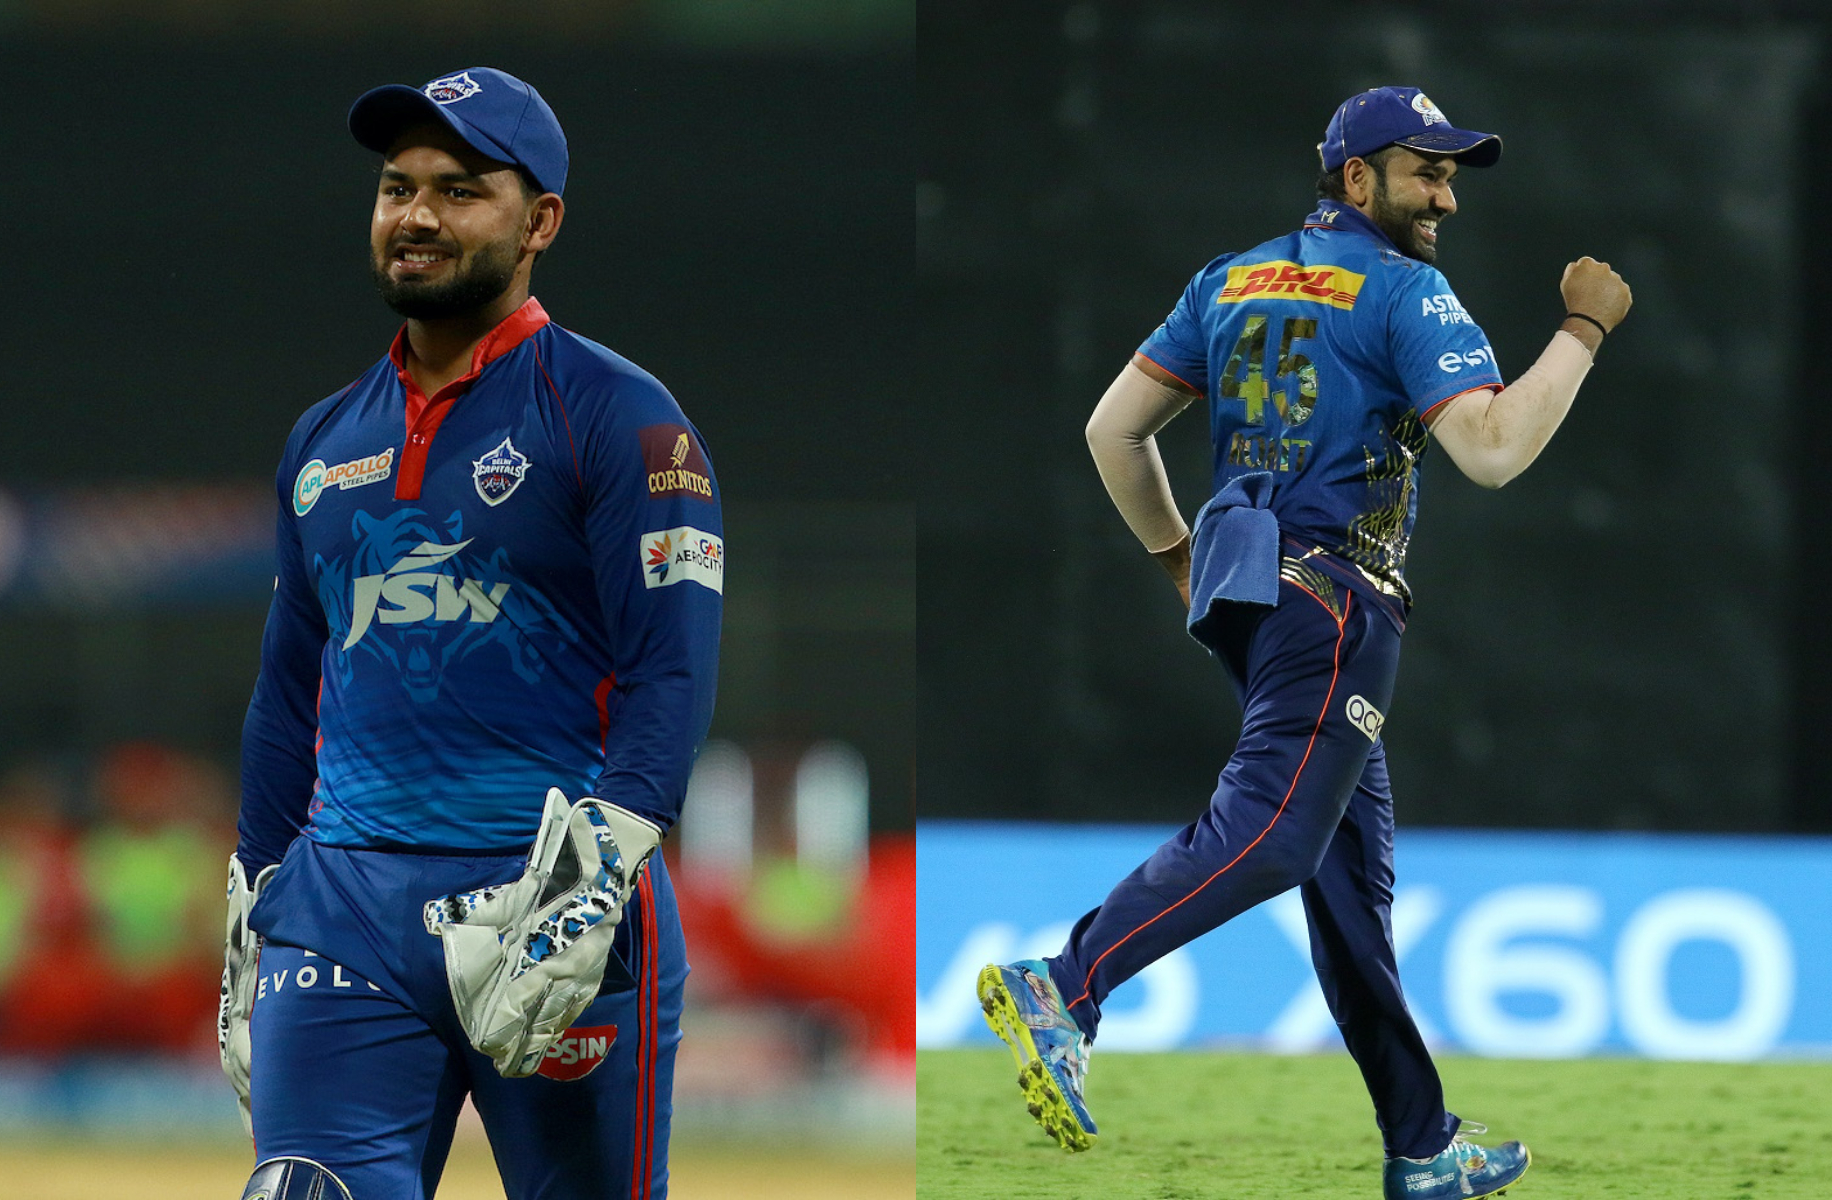 Both teams are coming off dominating victories to their name | BCCI-IPL